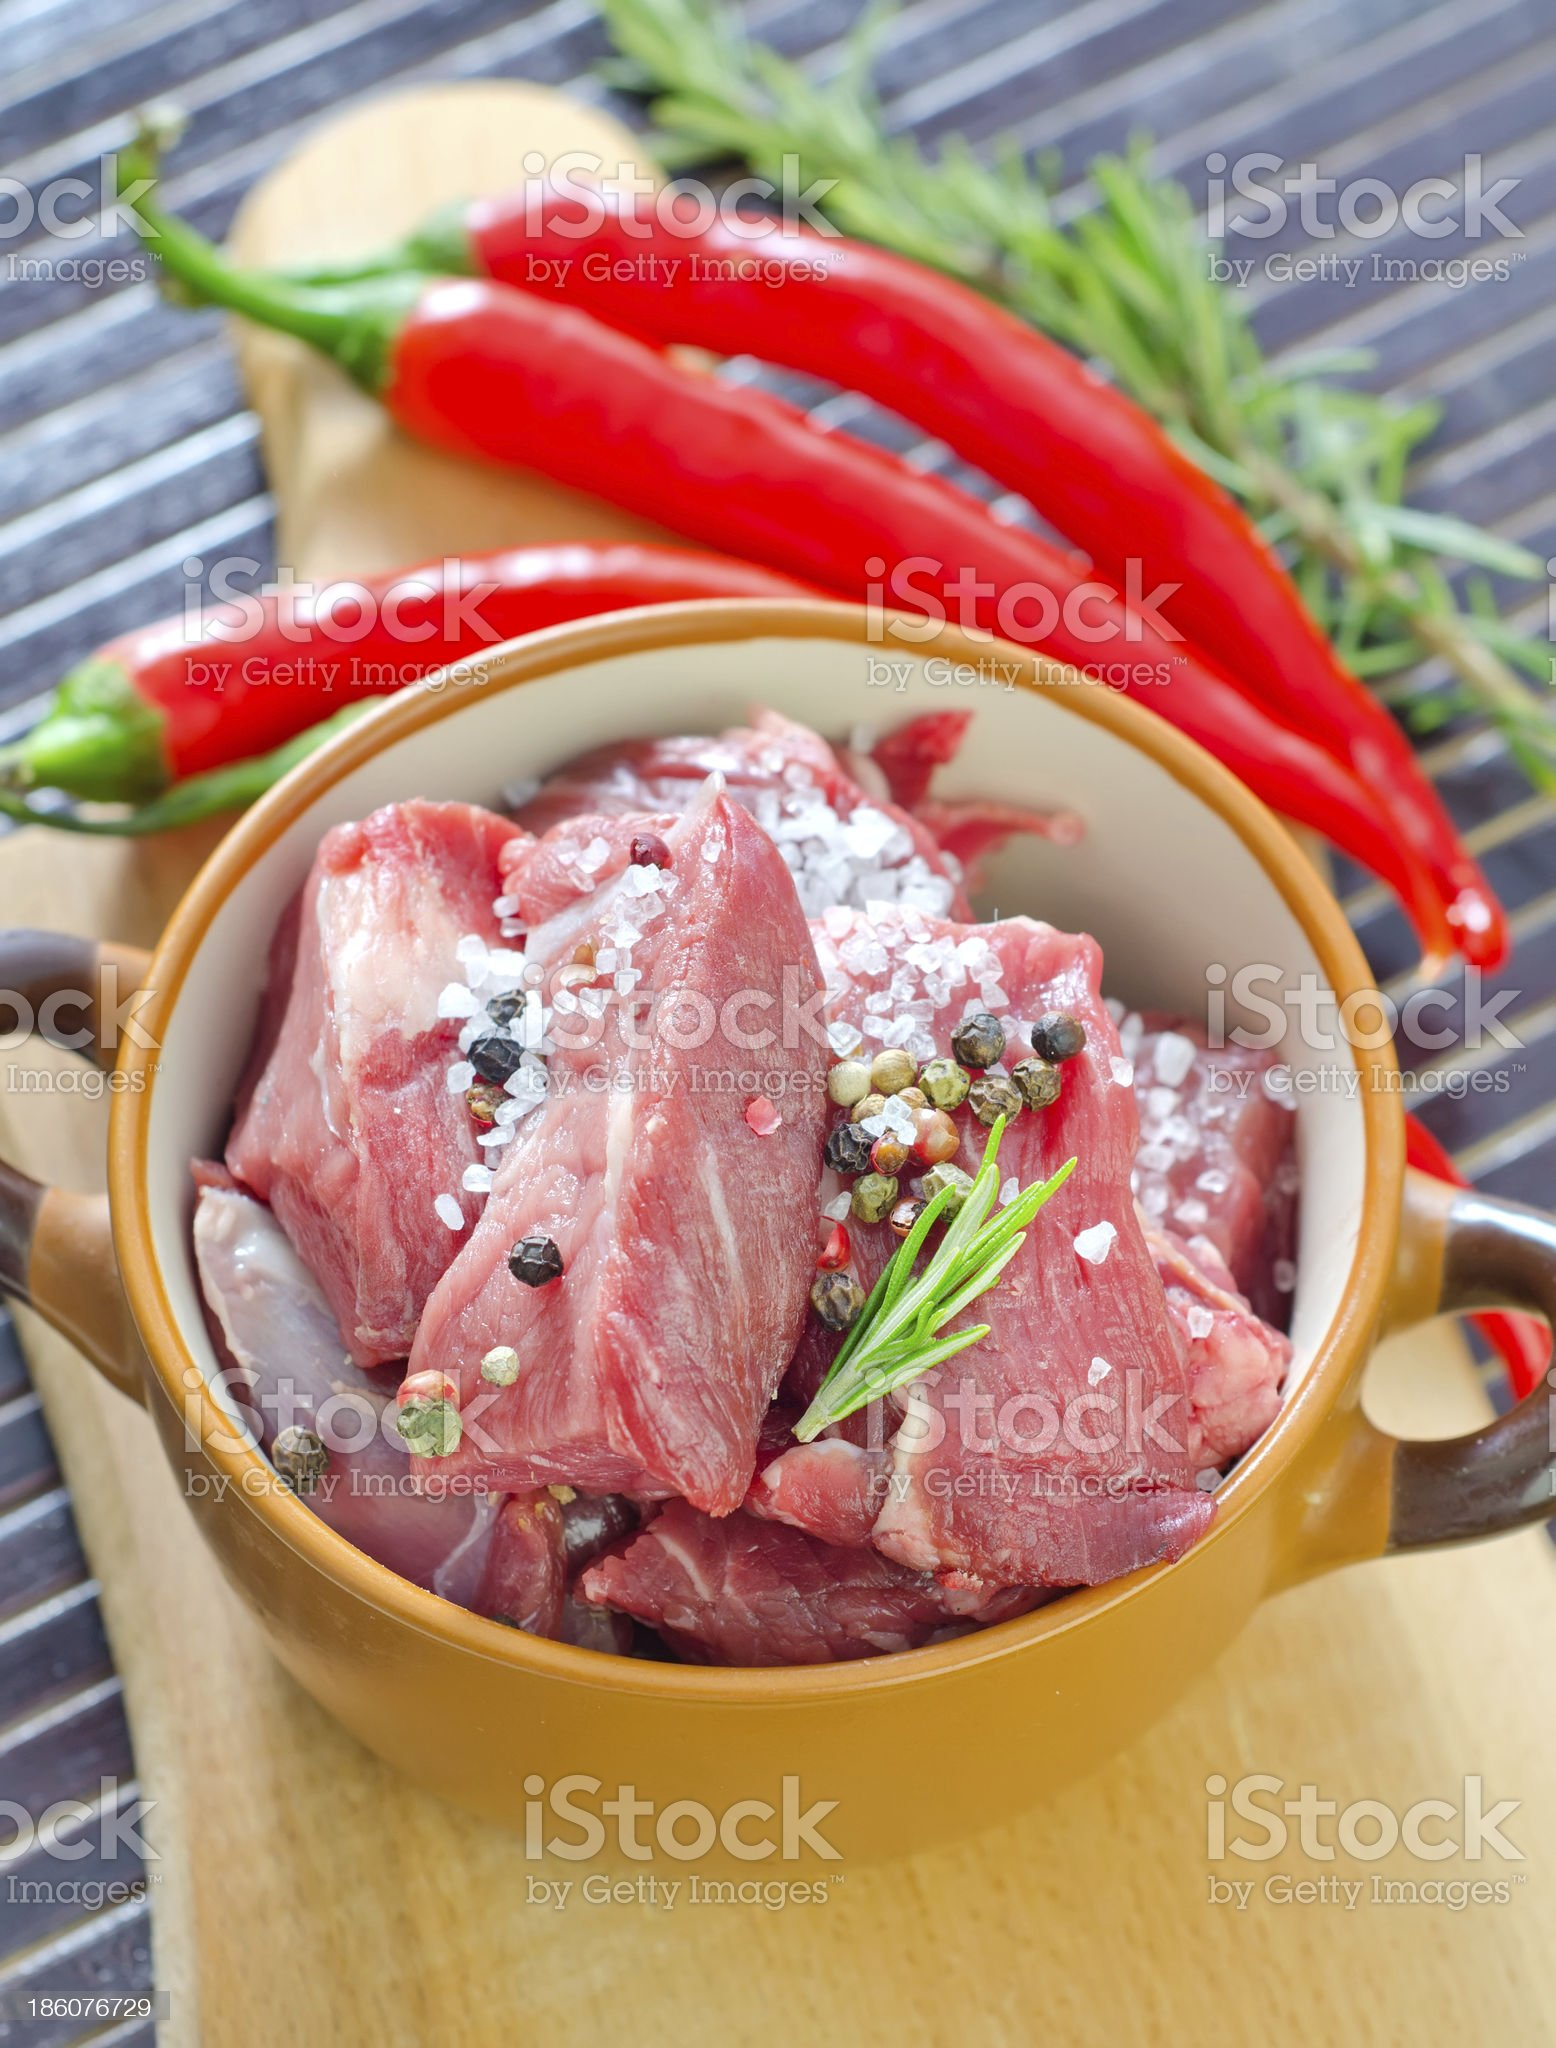 raw meat royalty-free stock photo